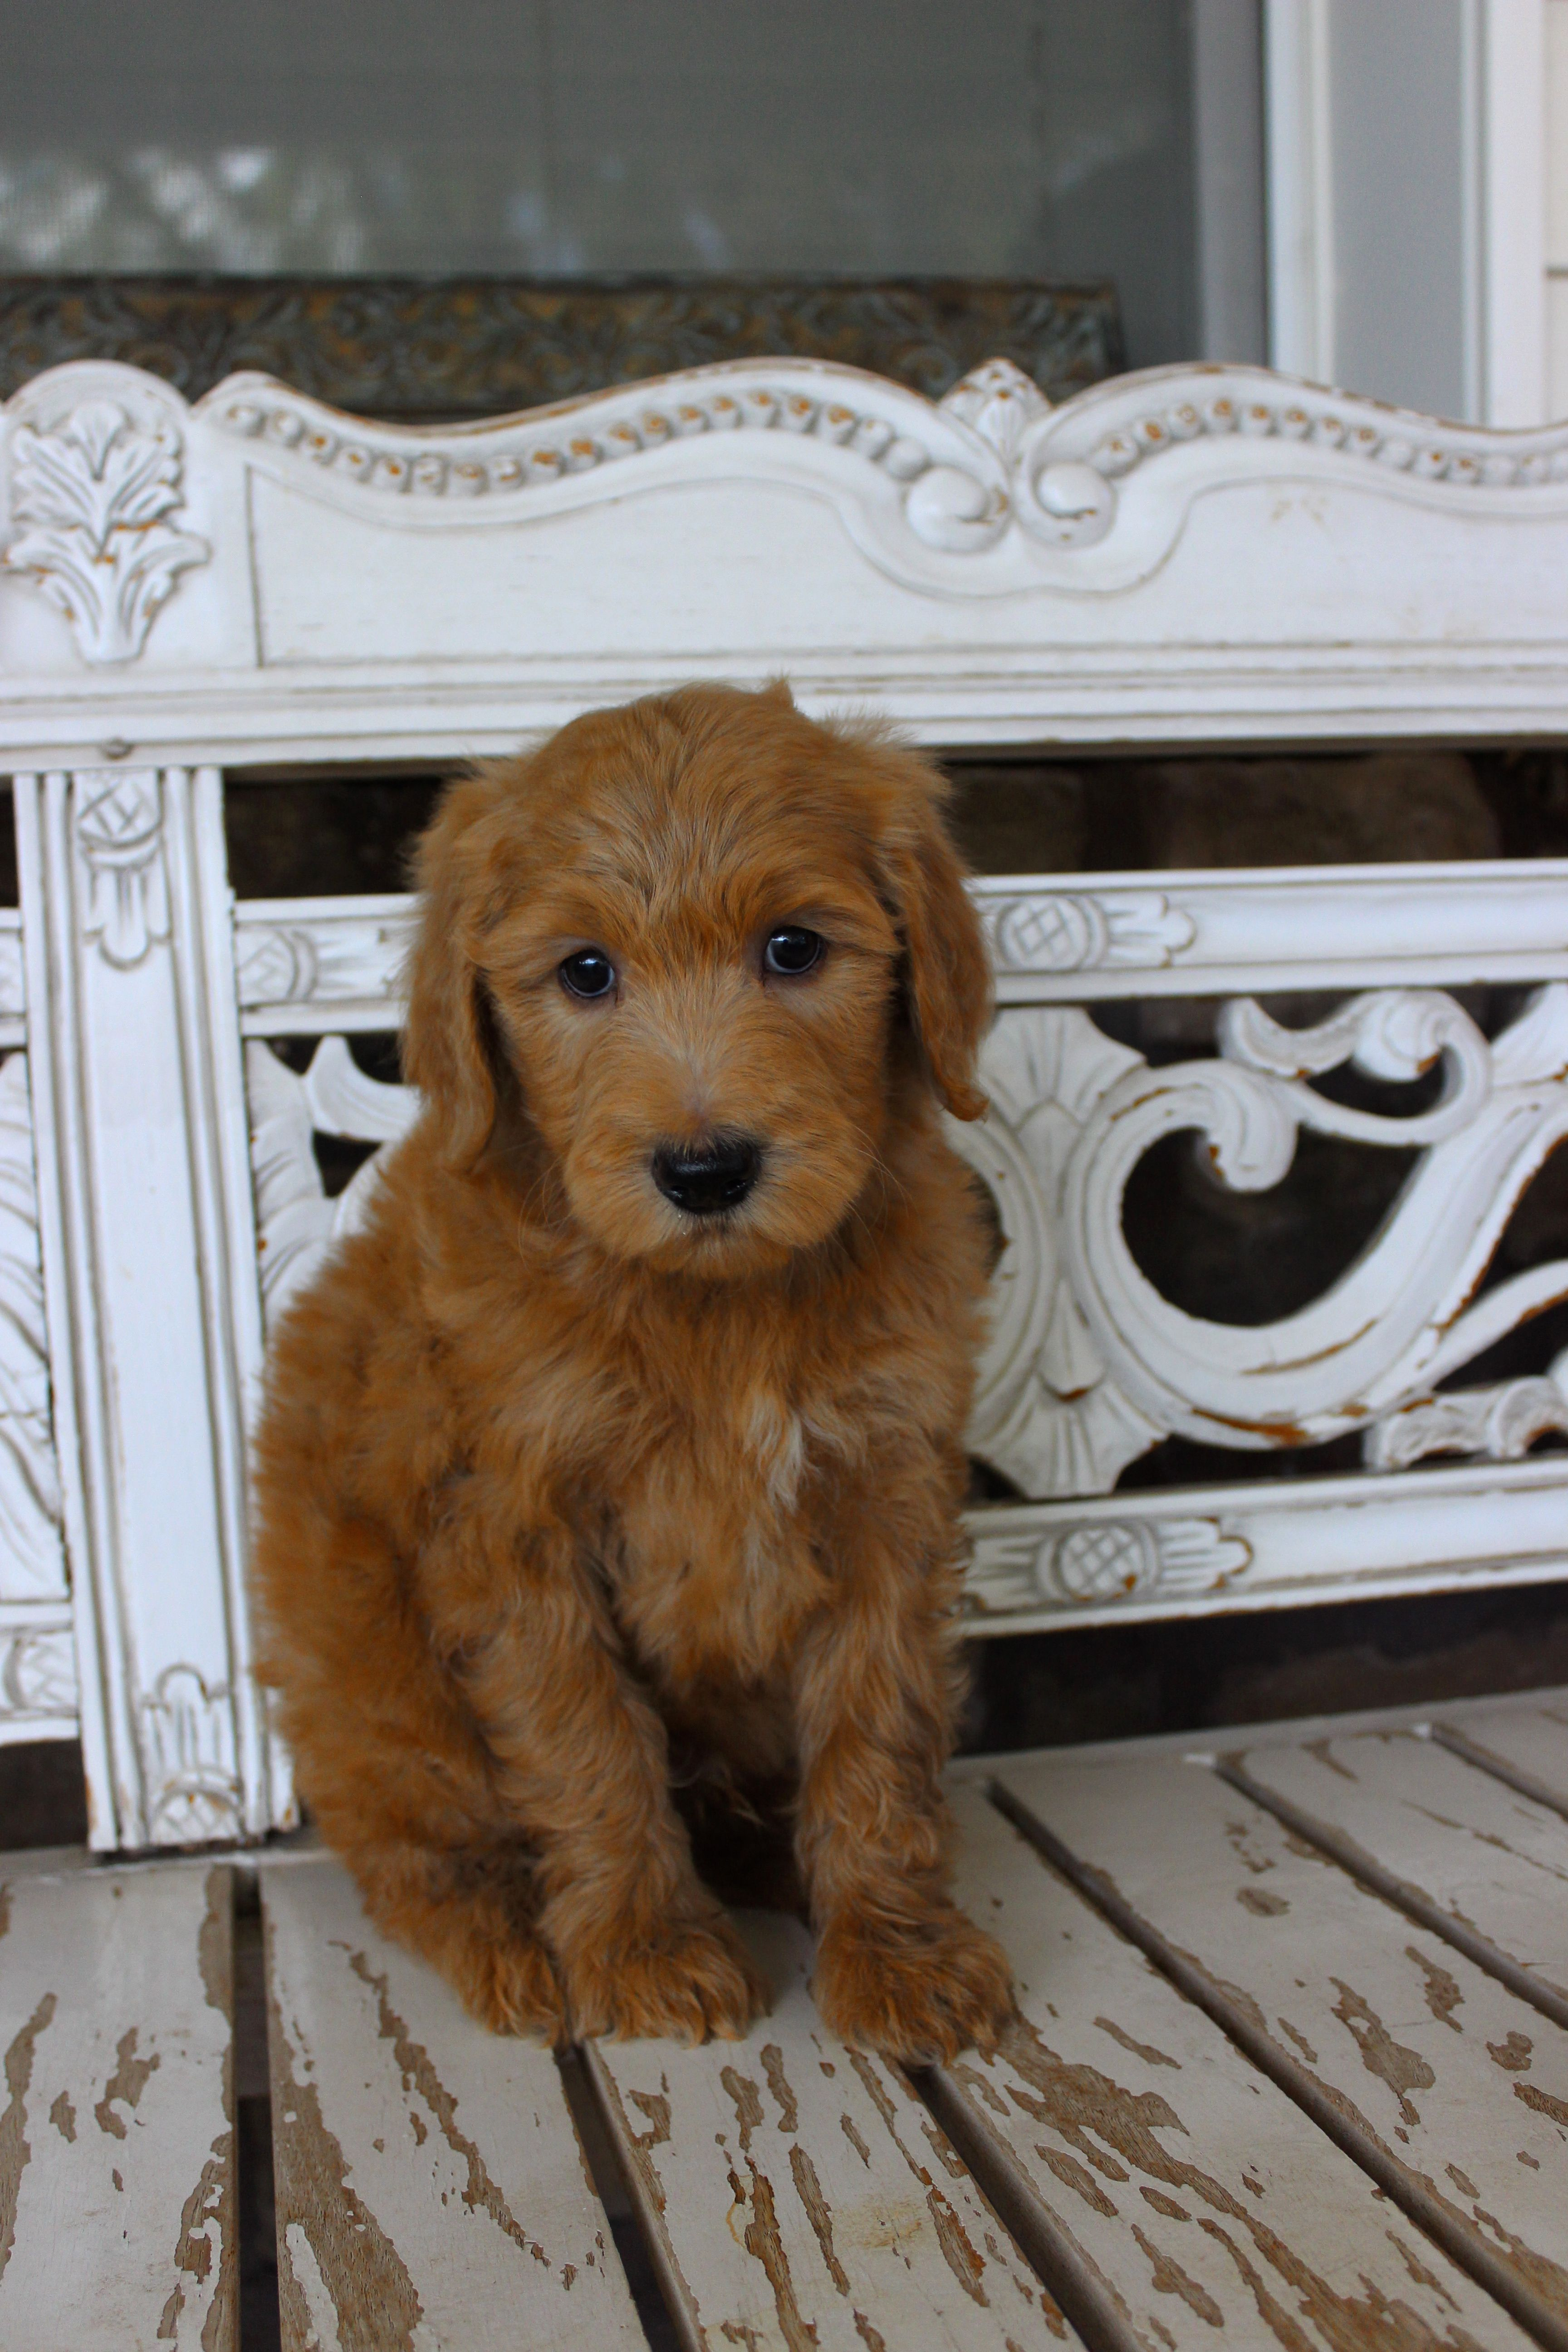 parents also best known of bernedoodle mixed this information picture fans mountain its and breed poodle sheds shedding bernese as that the has boast worlds both breeds dog from pictures